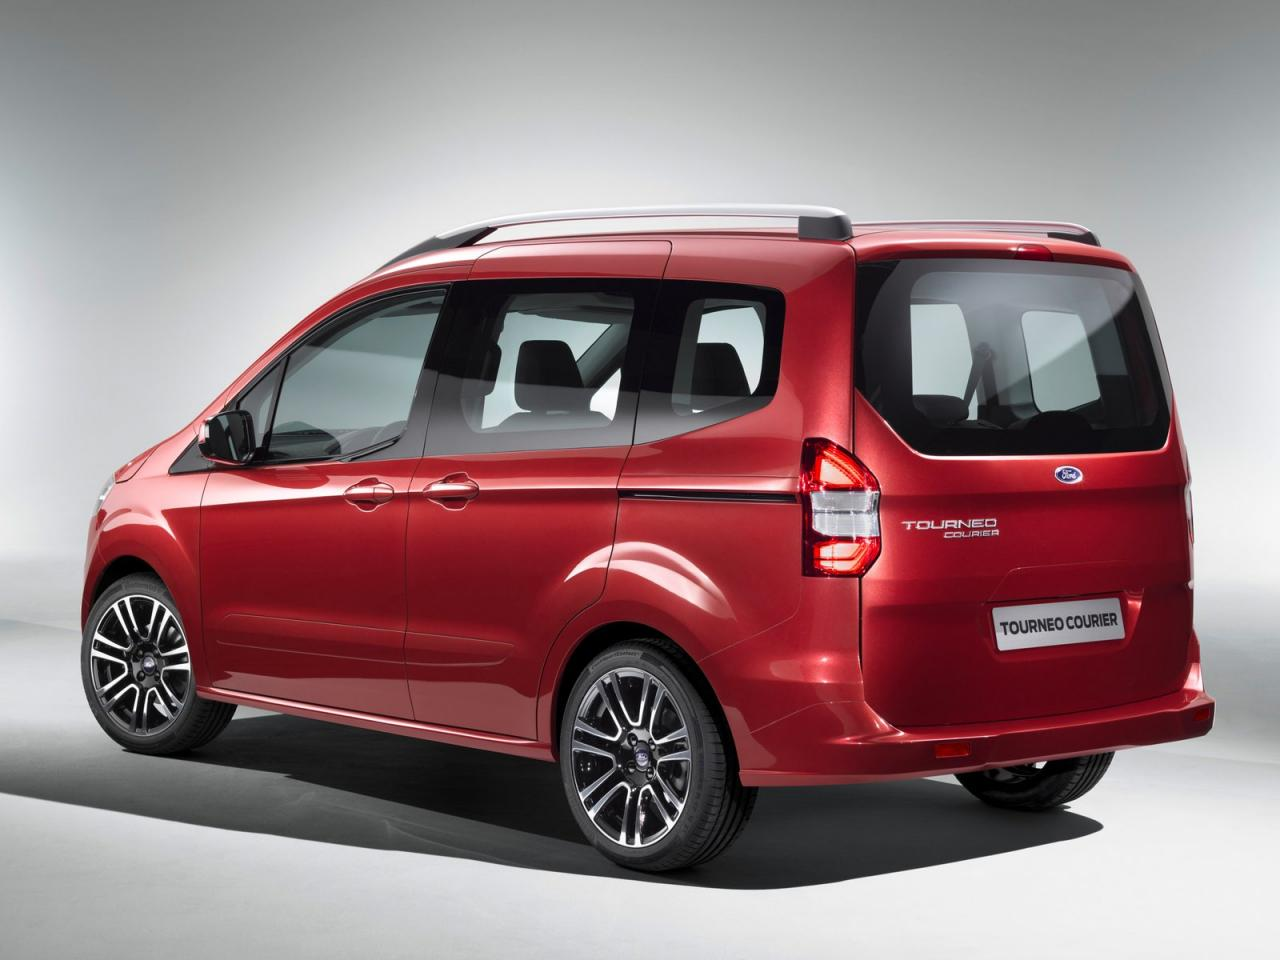 [Resim: Ford+Tourneo+Courier+2.jpg]